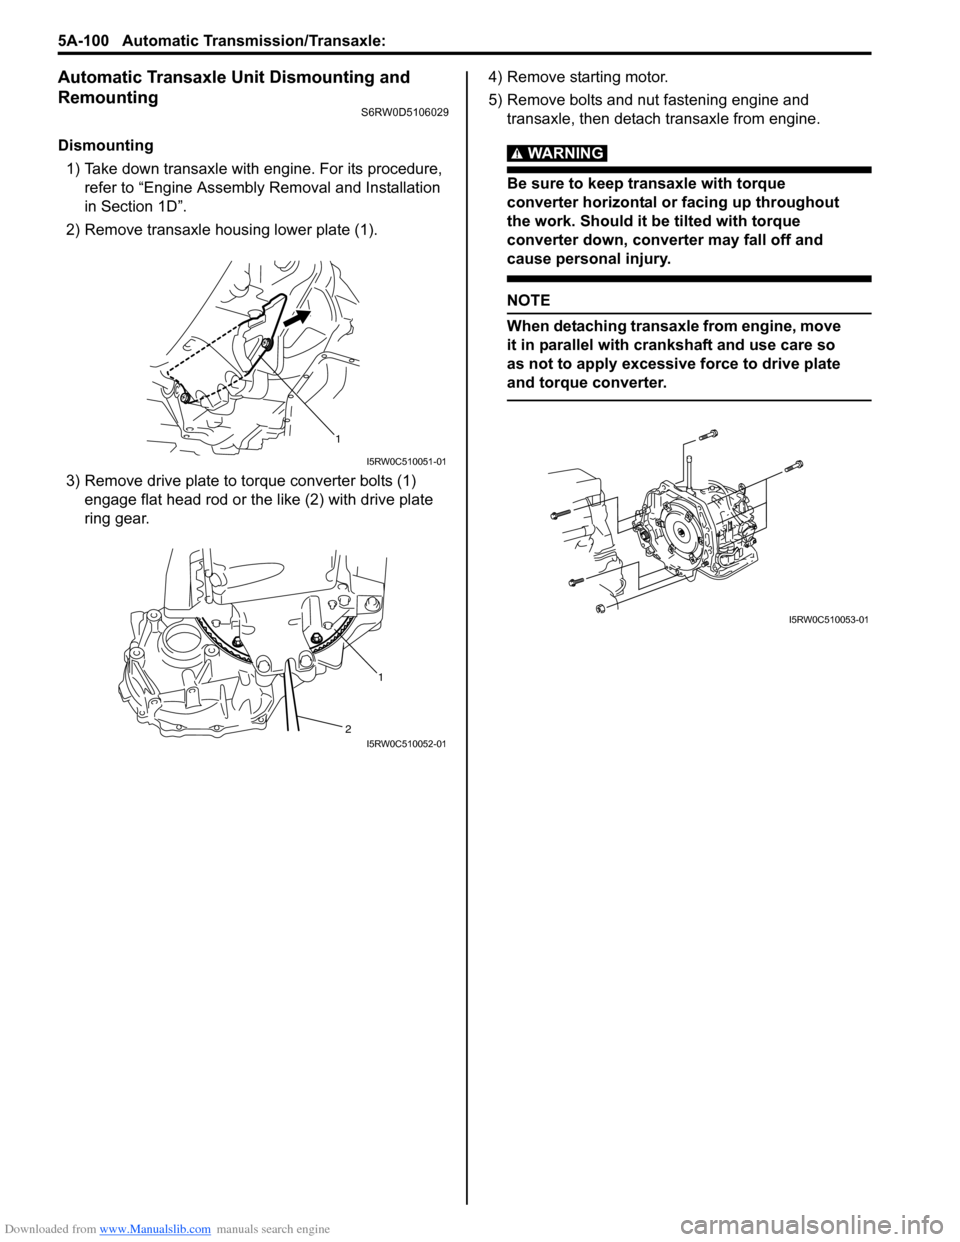 Warning Suzuki Sx4 2006 1g Service Workshop Manual Automatic Transmission Diagram How An Works G Page 748